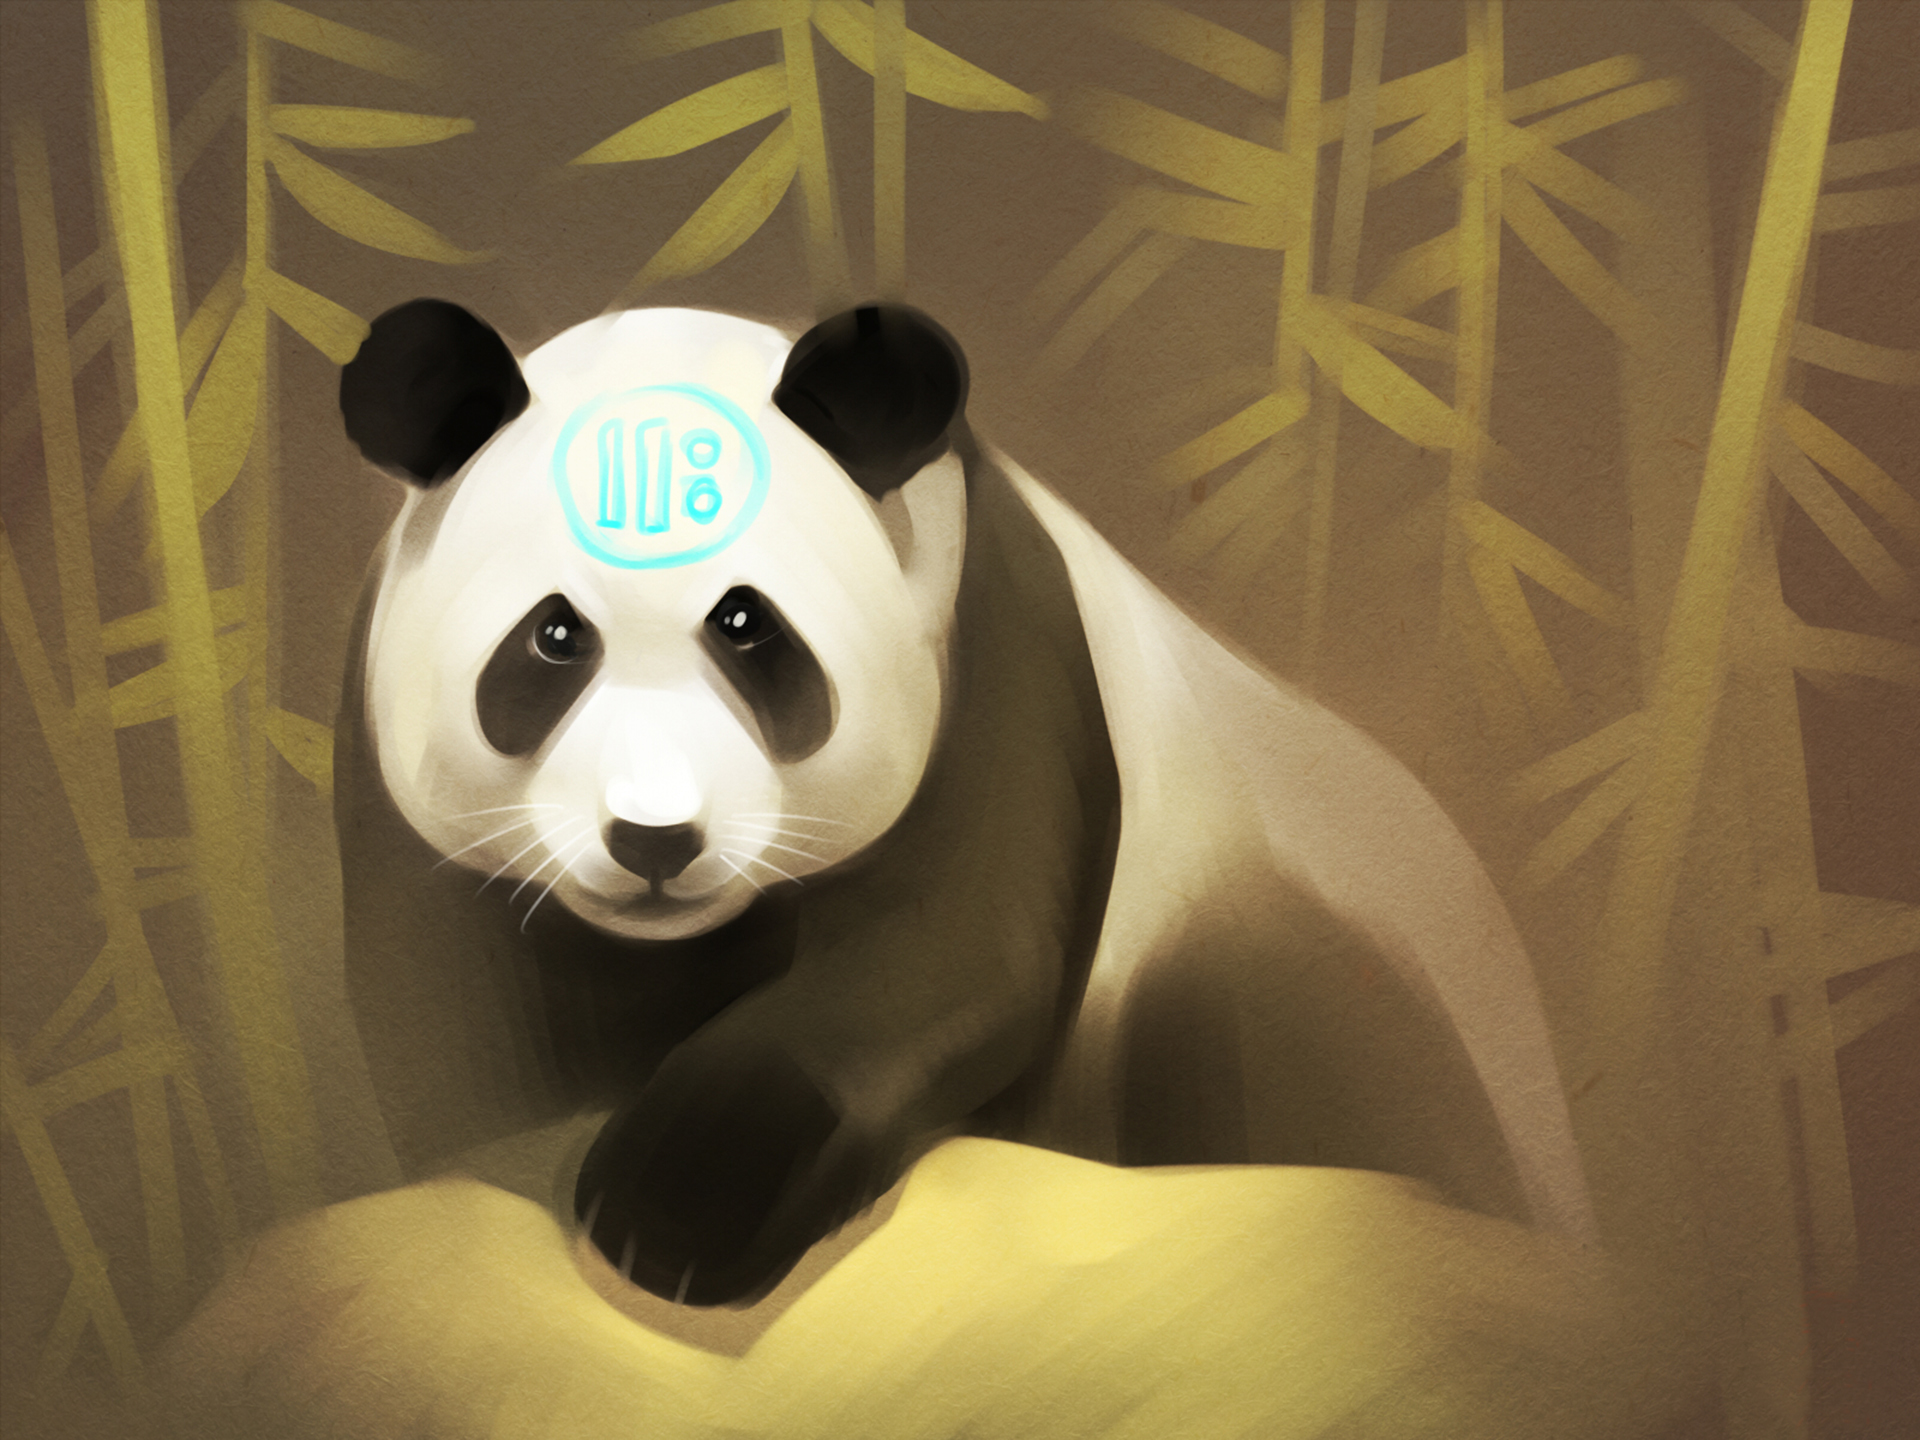 144539 download wallpaper Panda, Art, Bamboo screensavers and pictures for free